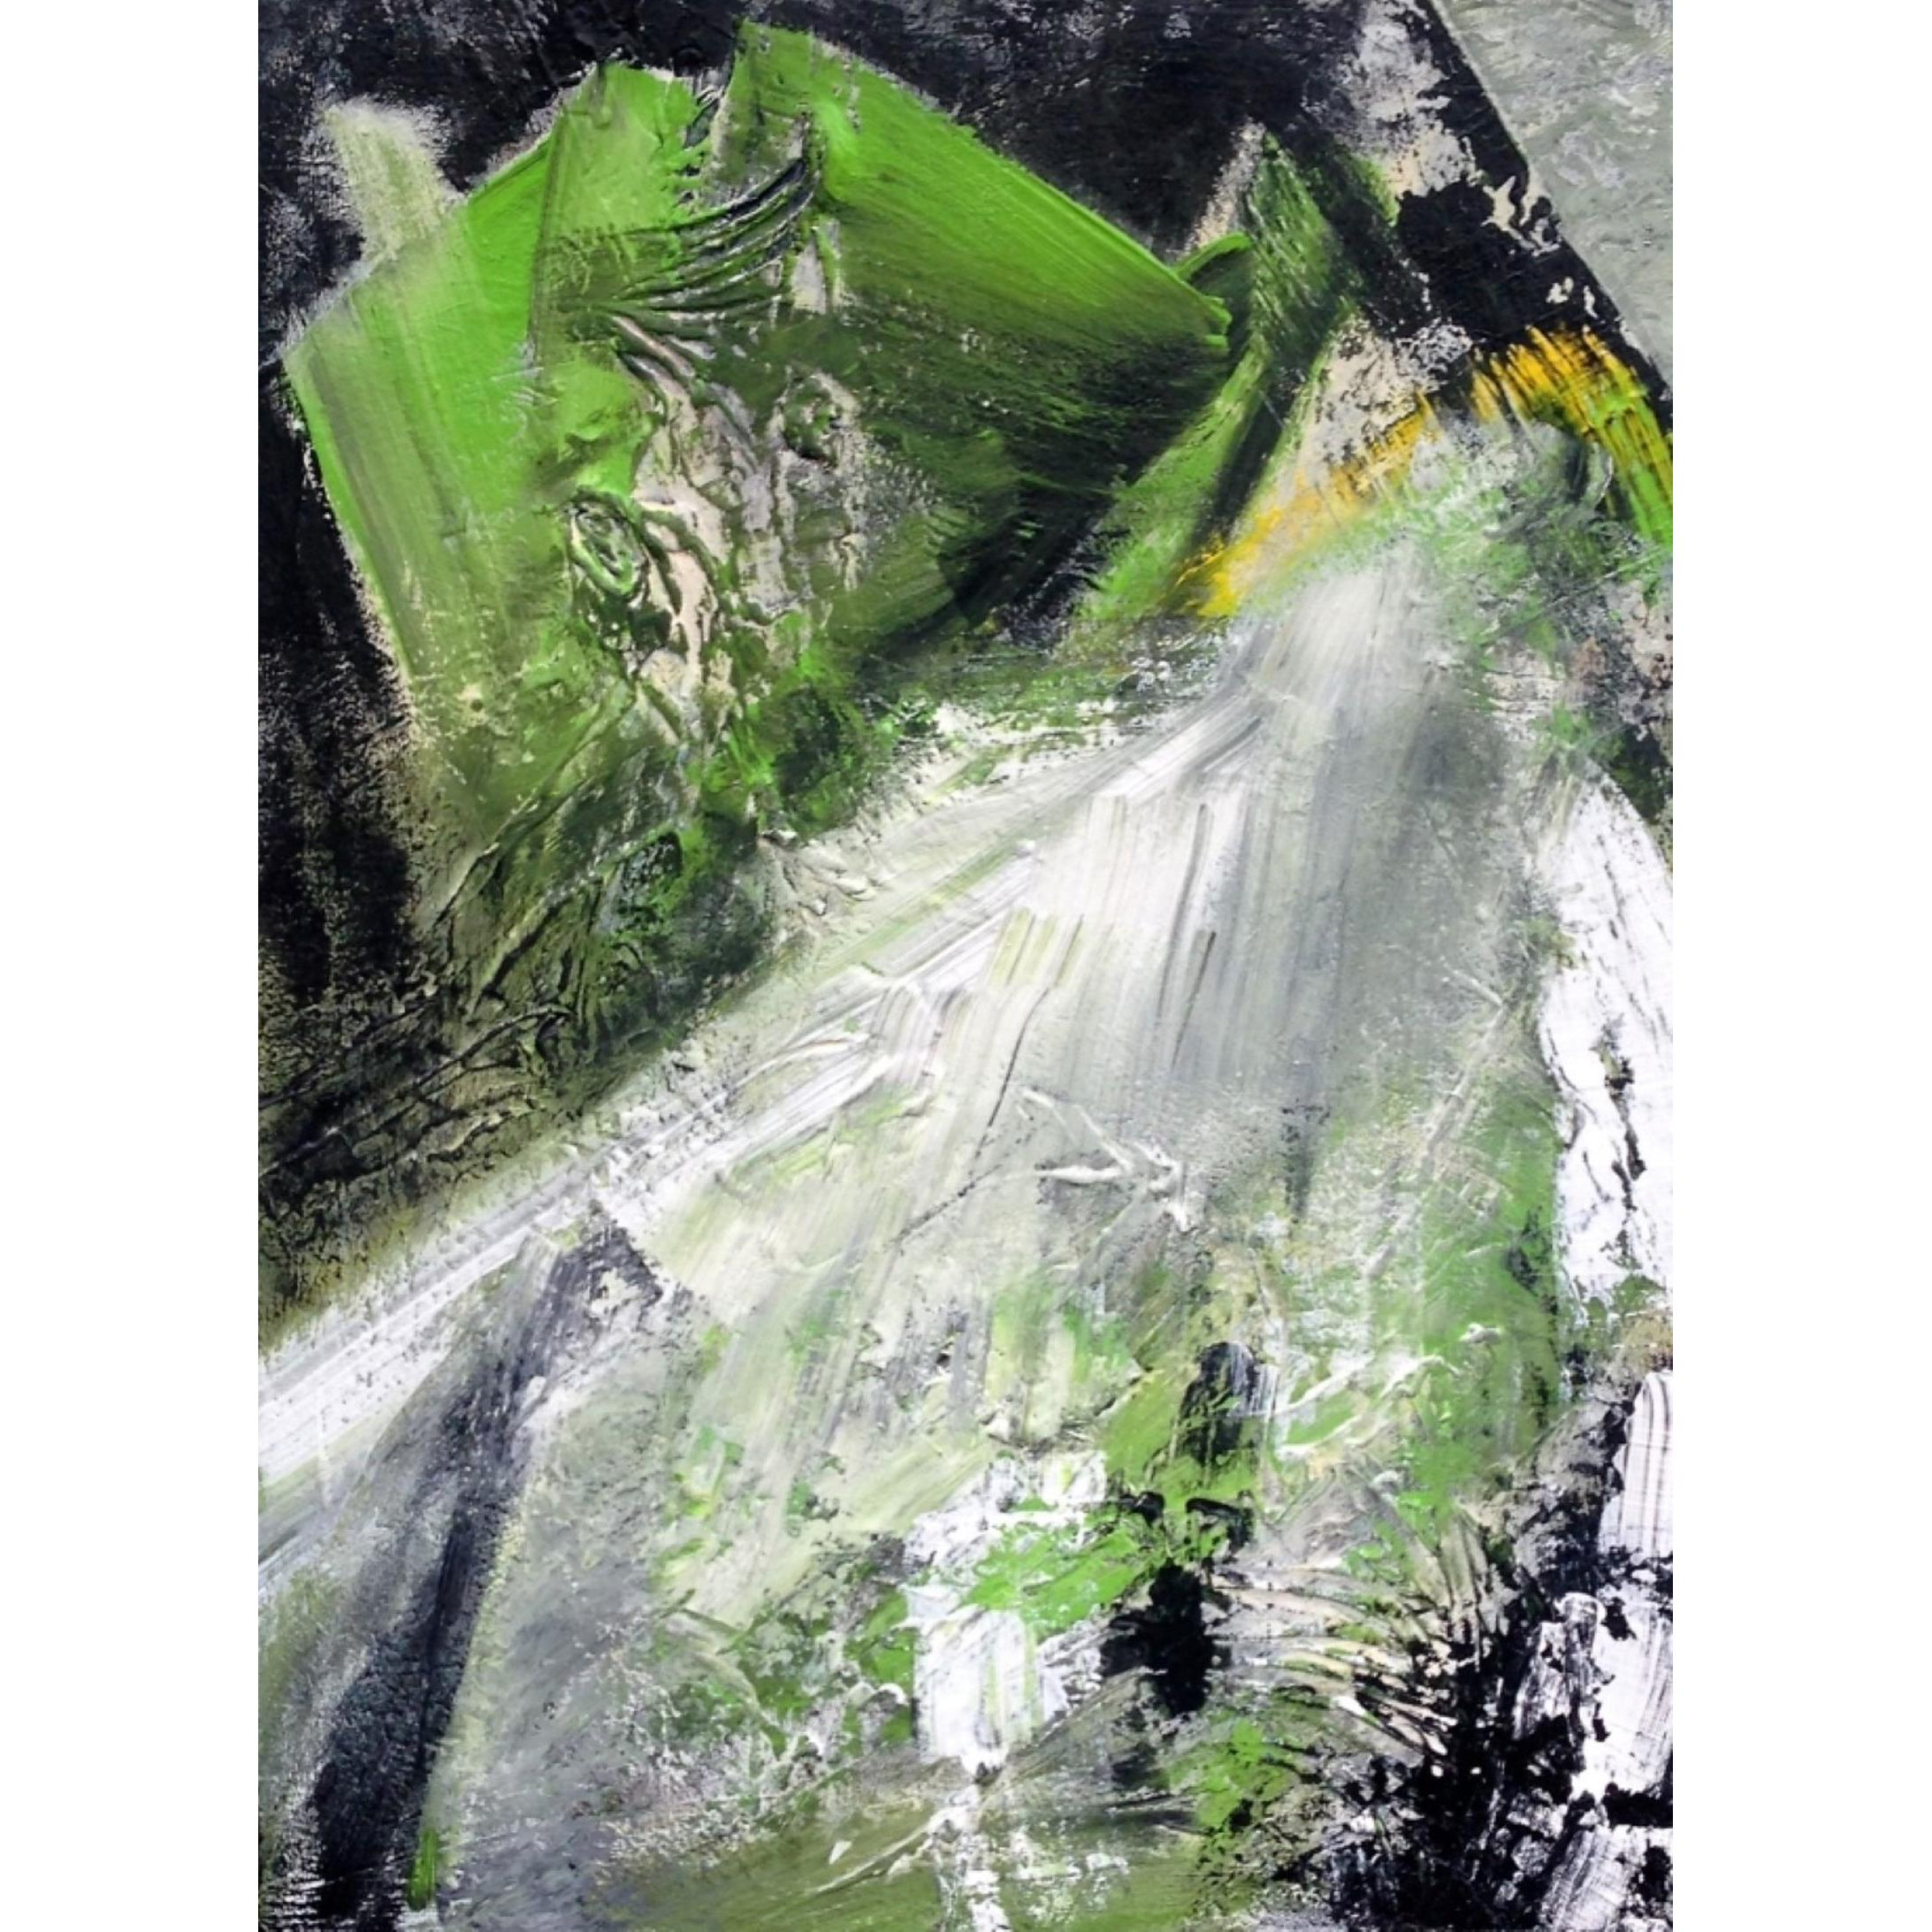 20th Century Abstract Expressionist Painting, American Artist, Suzanne Clune